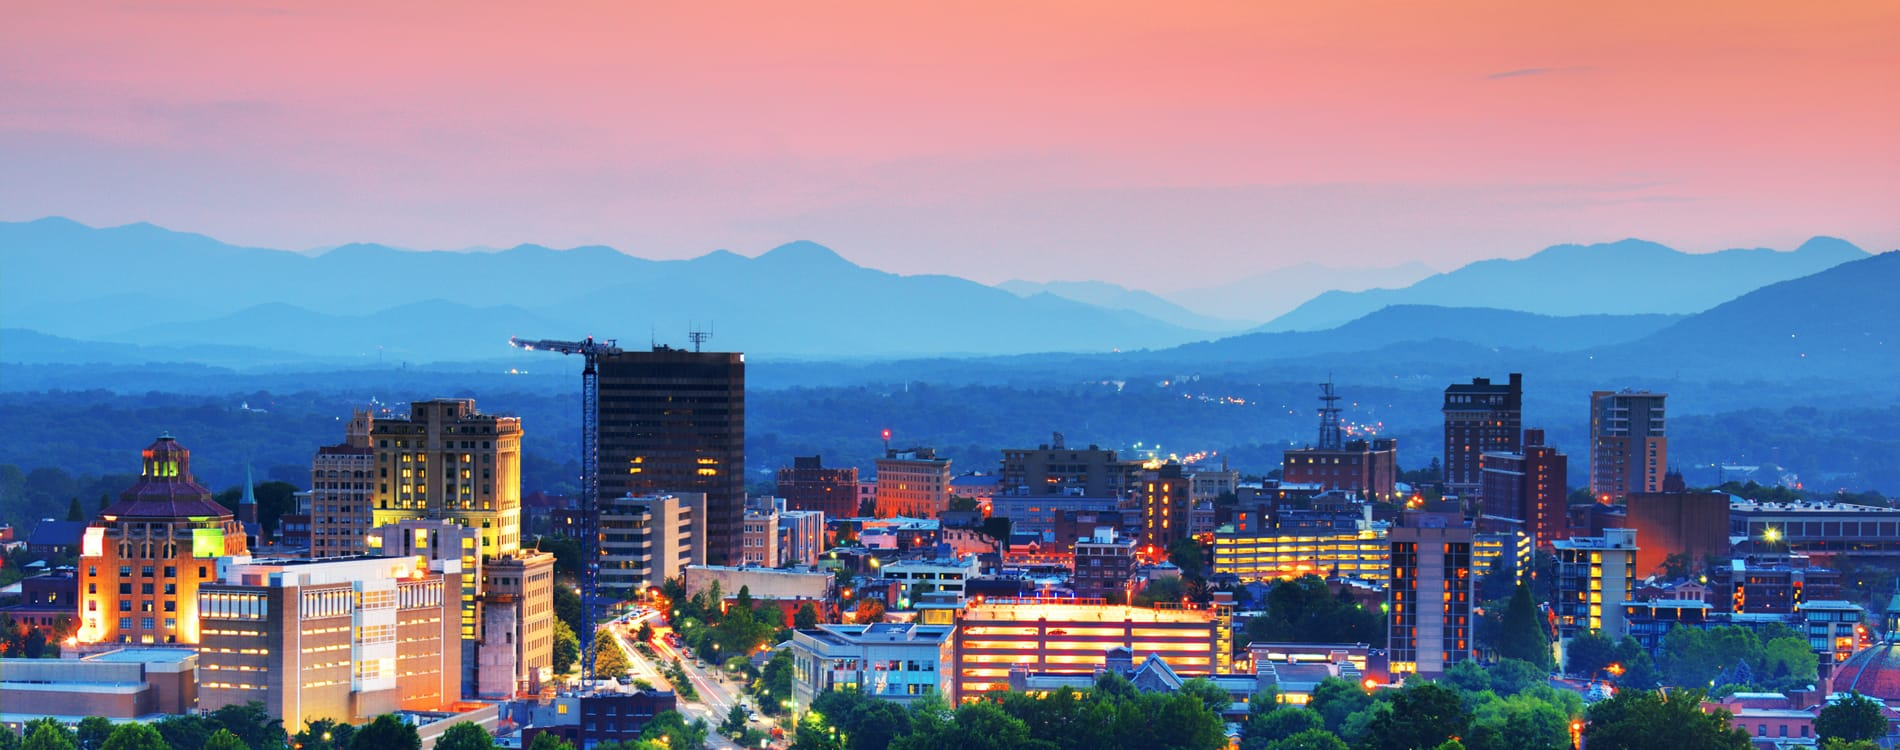 Asheville, NC - Skyline of Asheville North Carolina